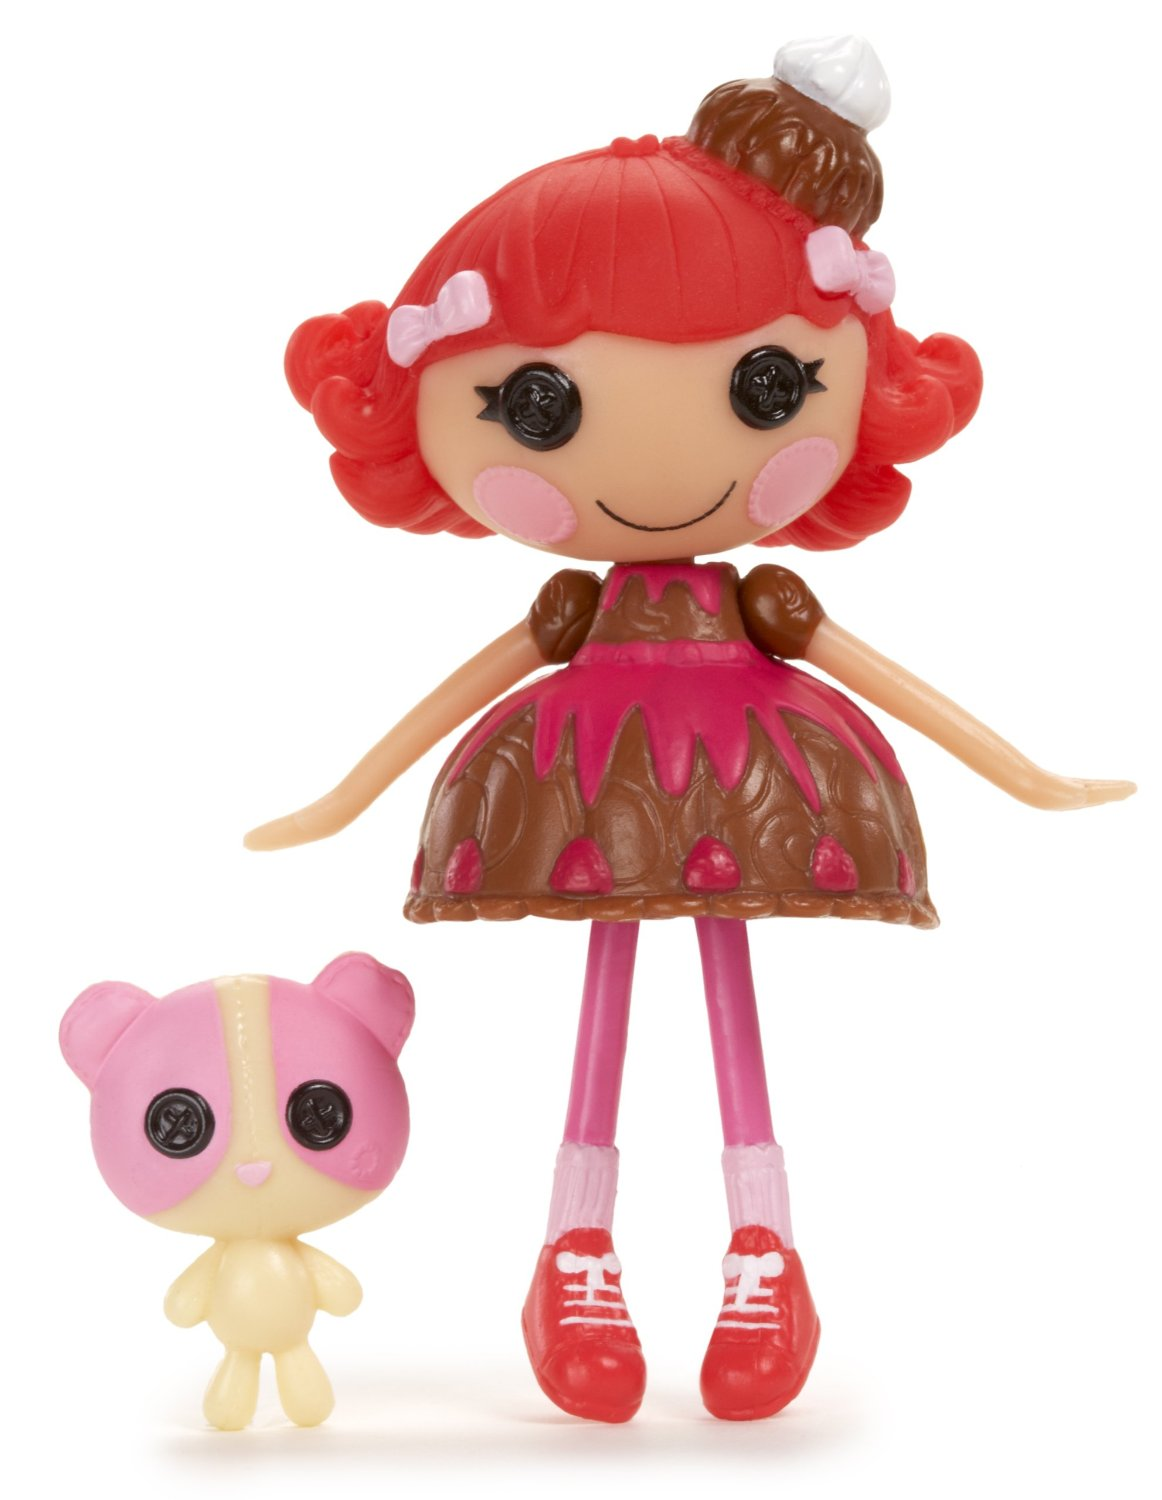 Lalaloopsy Toy Food : Choco whirl swirl lalaloopsy land wiki fandom powered